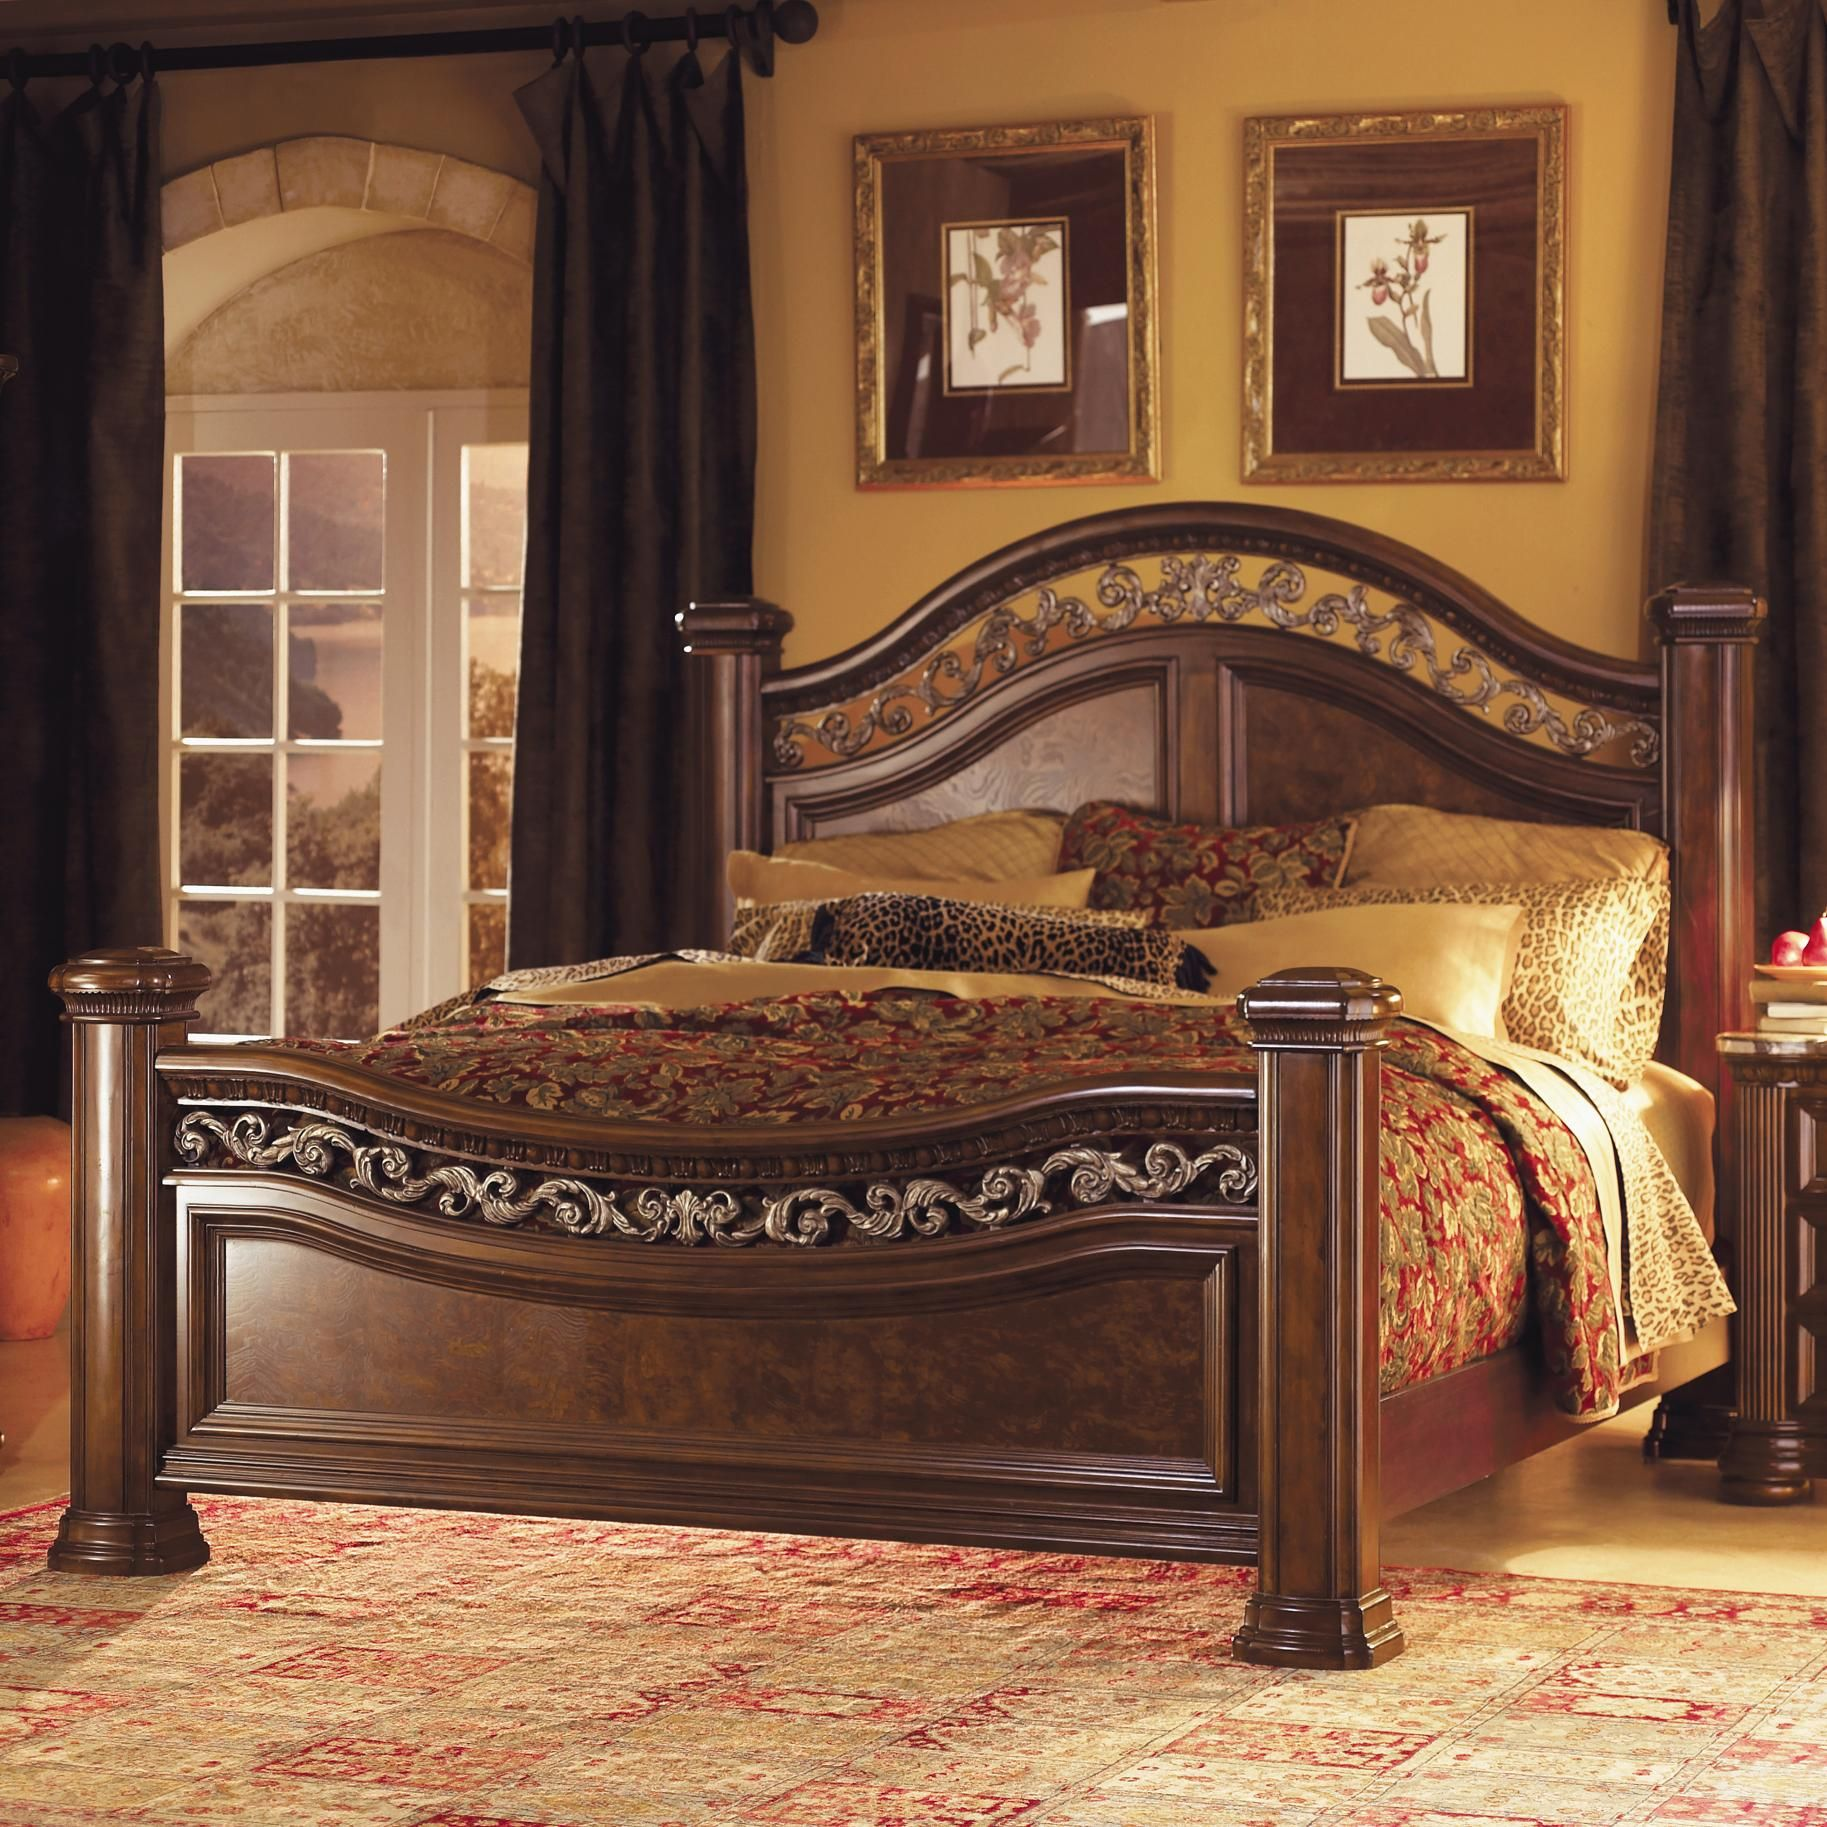 Granada california king mansion bed by flexsteel wynwood for Iron bedroom furniture